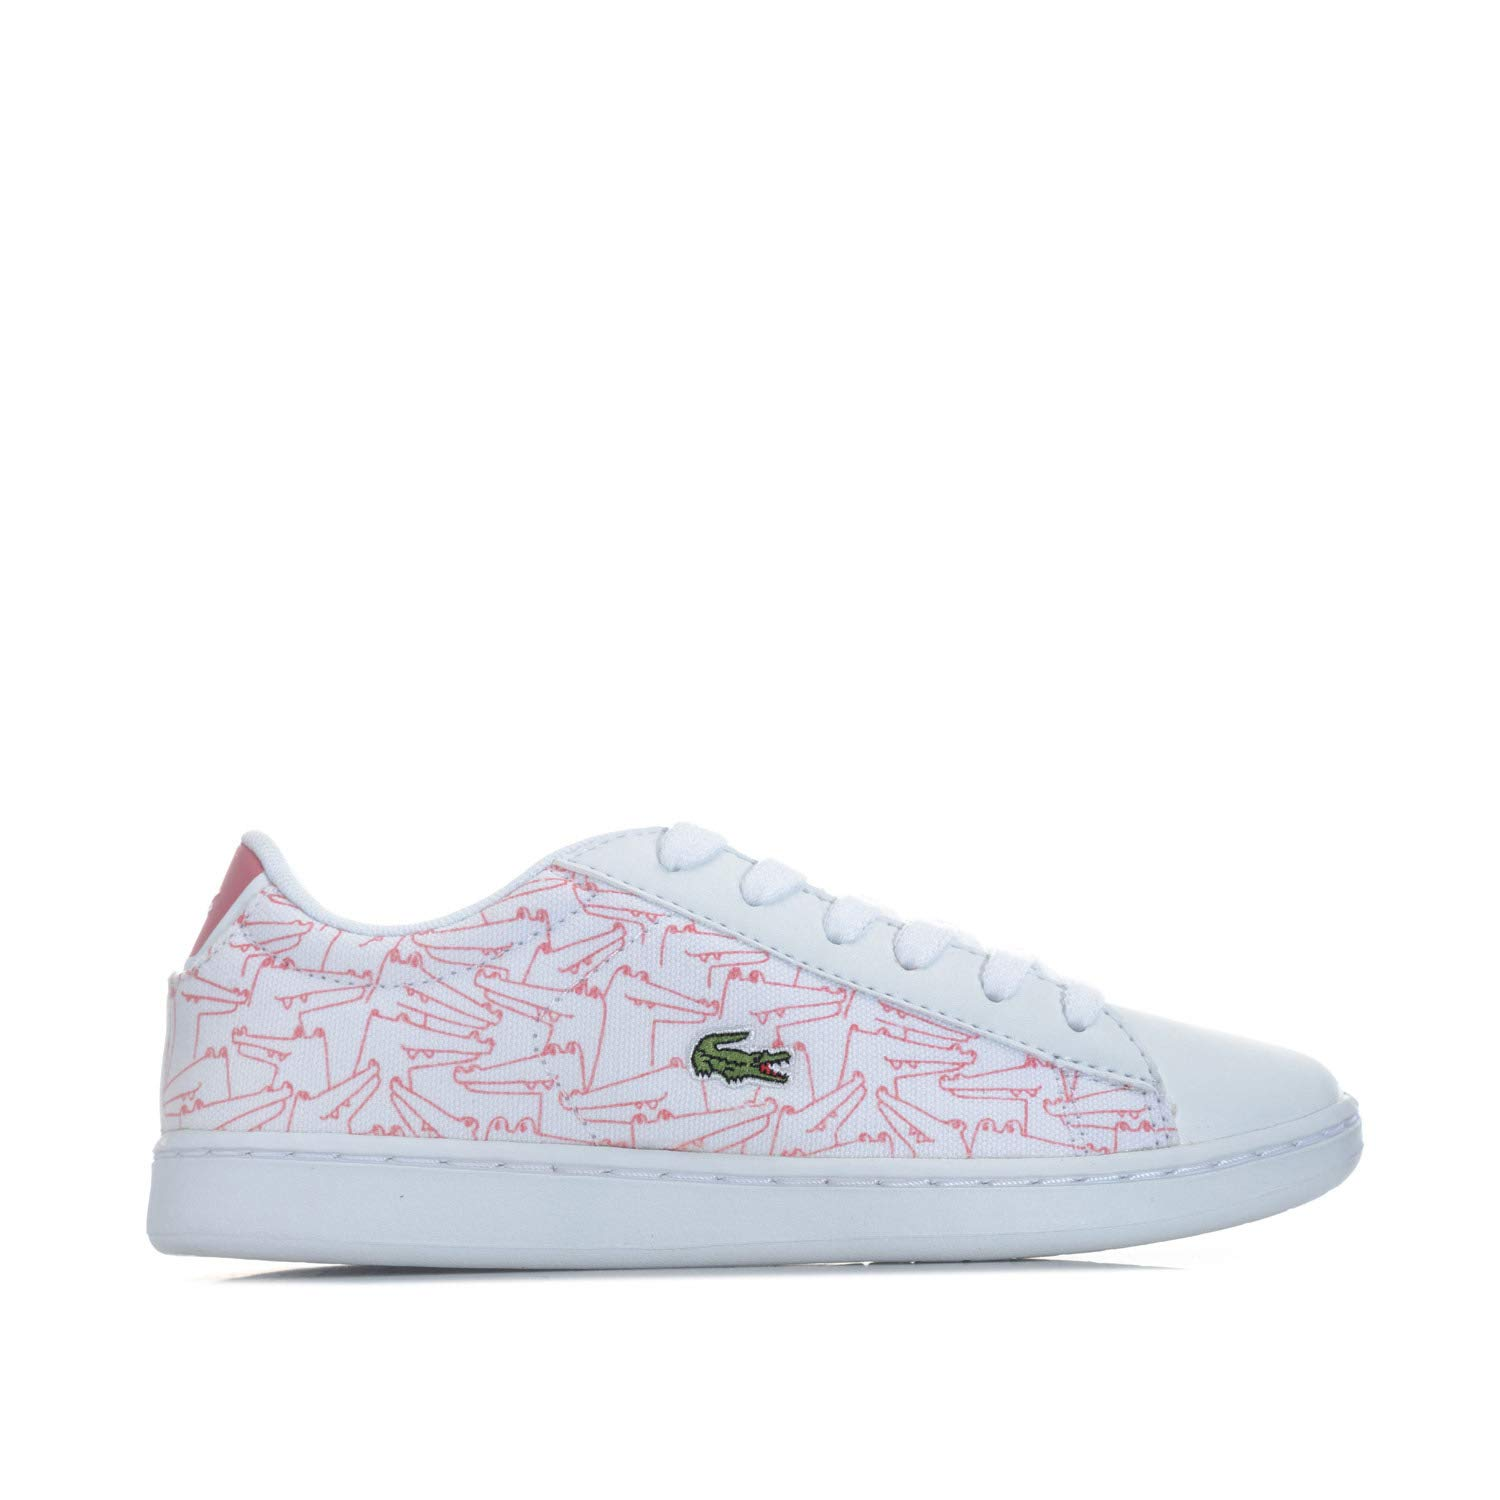 77436222 Lacoste Children Girls Carnaby Evo Trainers White Pink- Lace ...